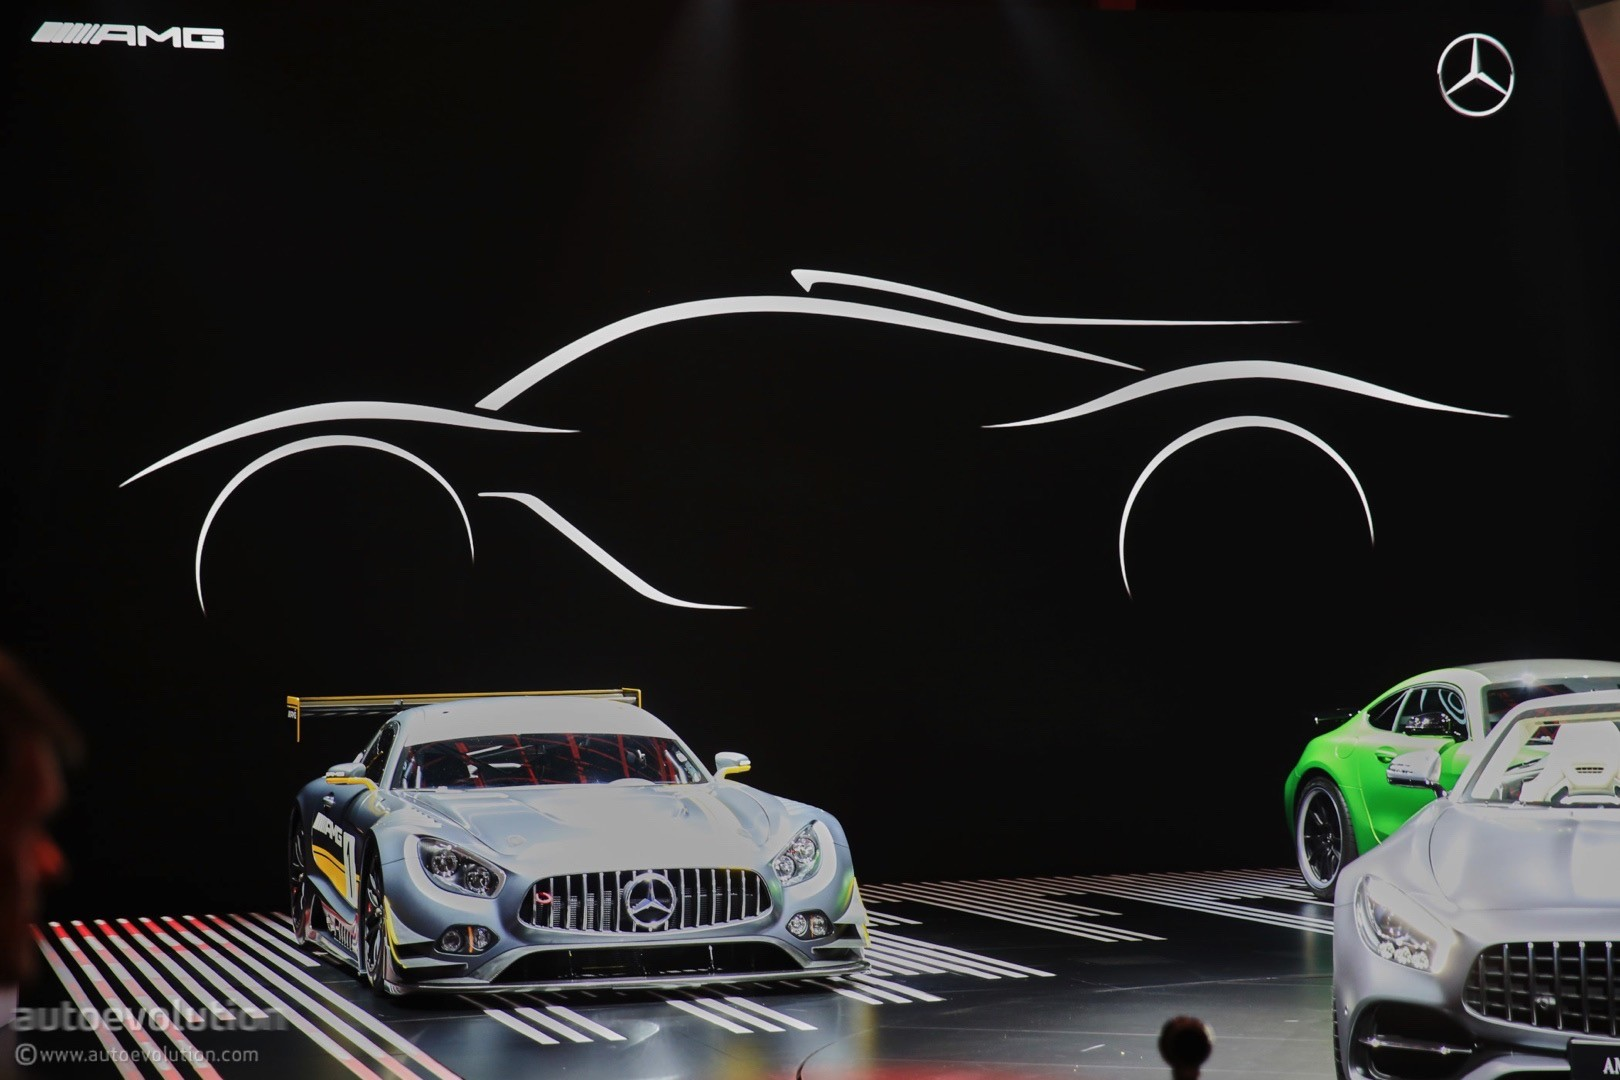 Mercedes Amg Hypercar Is Expected To Break Nurburgring Record In